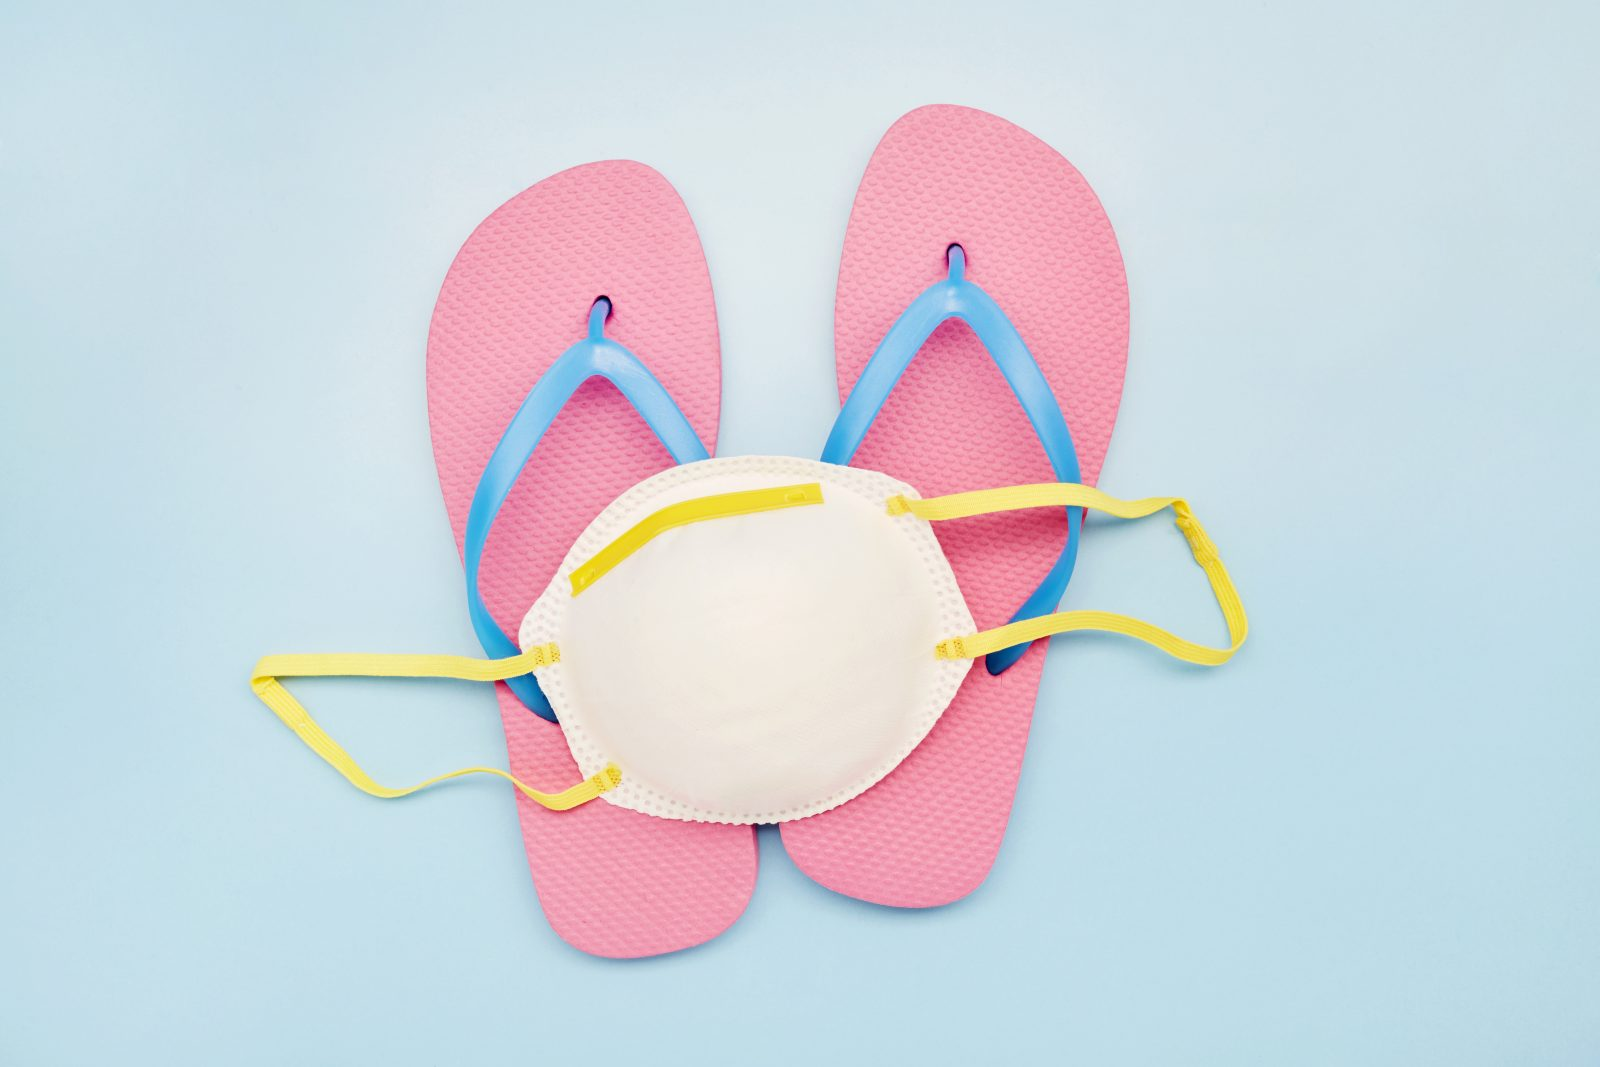 Still life of a white face mask and pink flip-flops on blue background, on vacation with a face mask